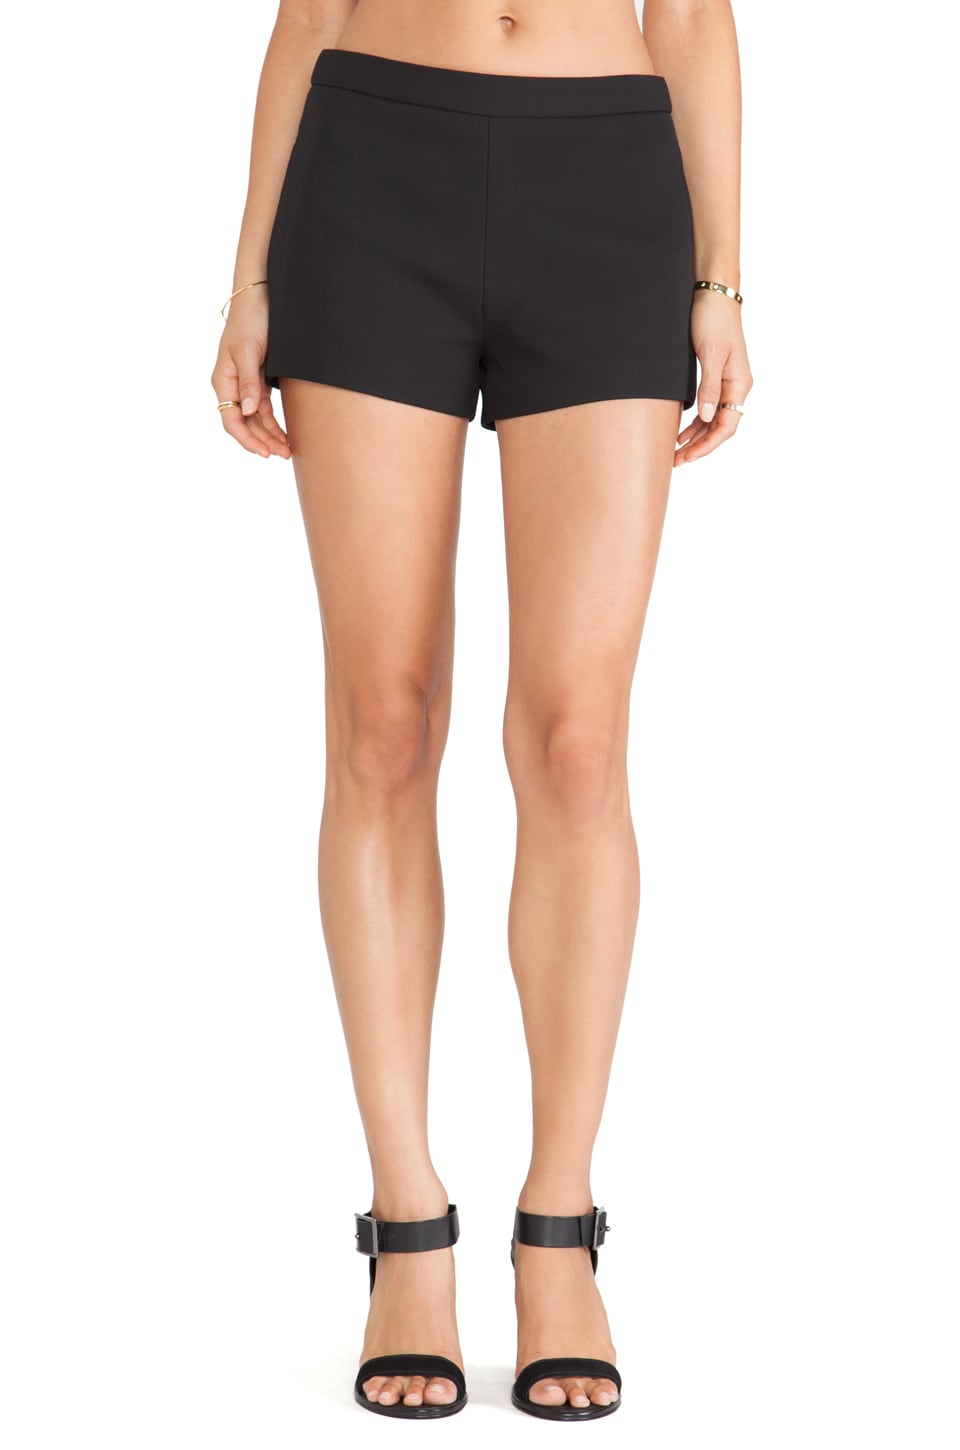 bless'ed are the meek Warp Short in Black